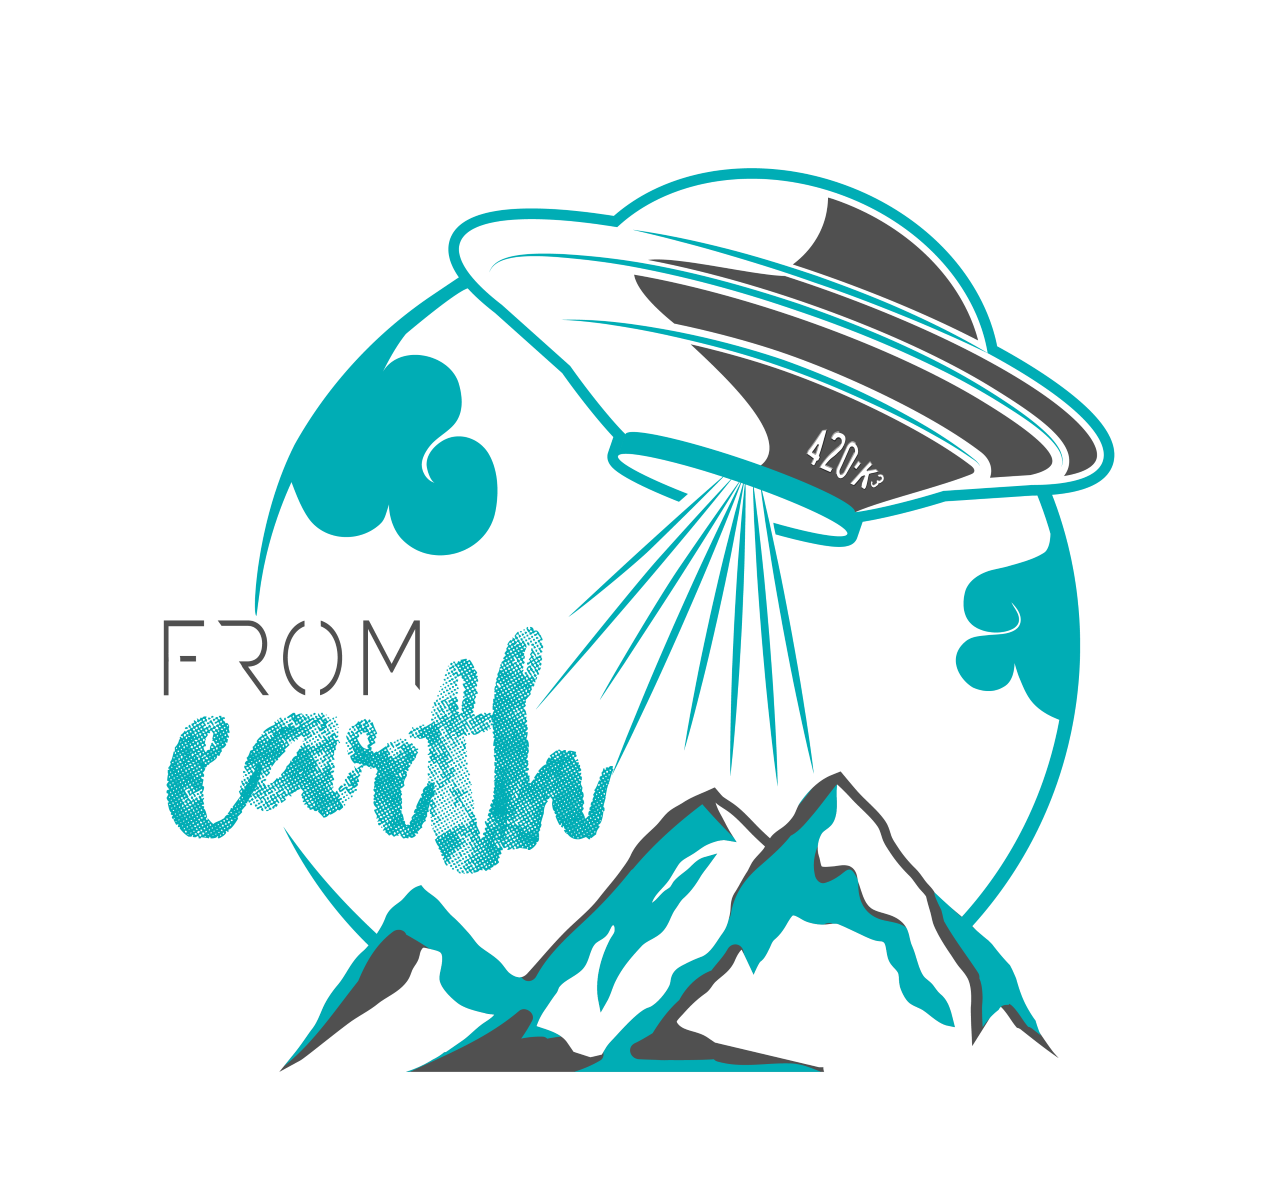 From Earth logo.png